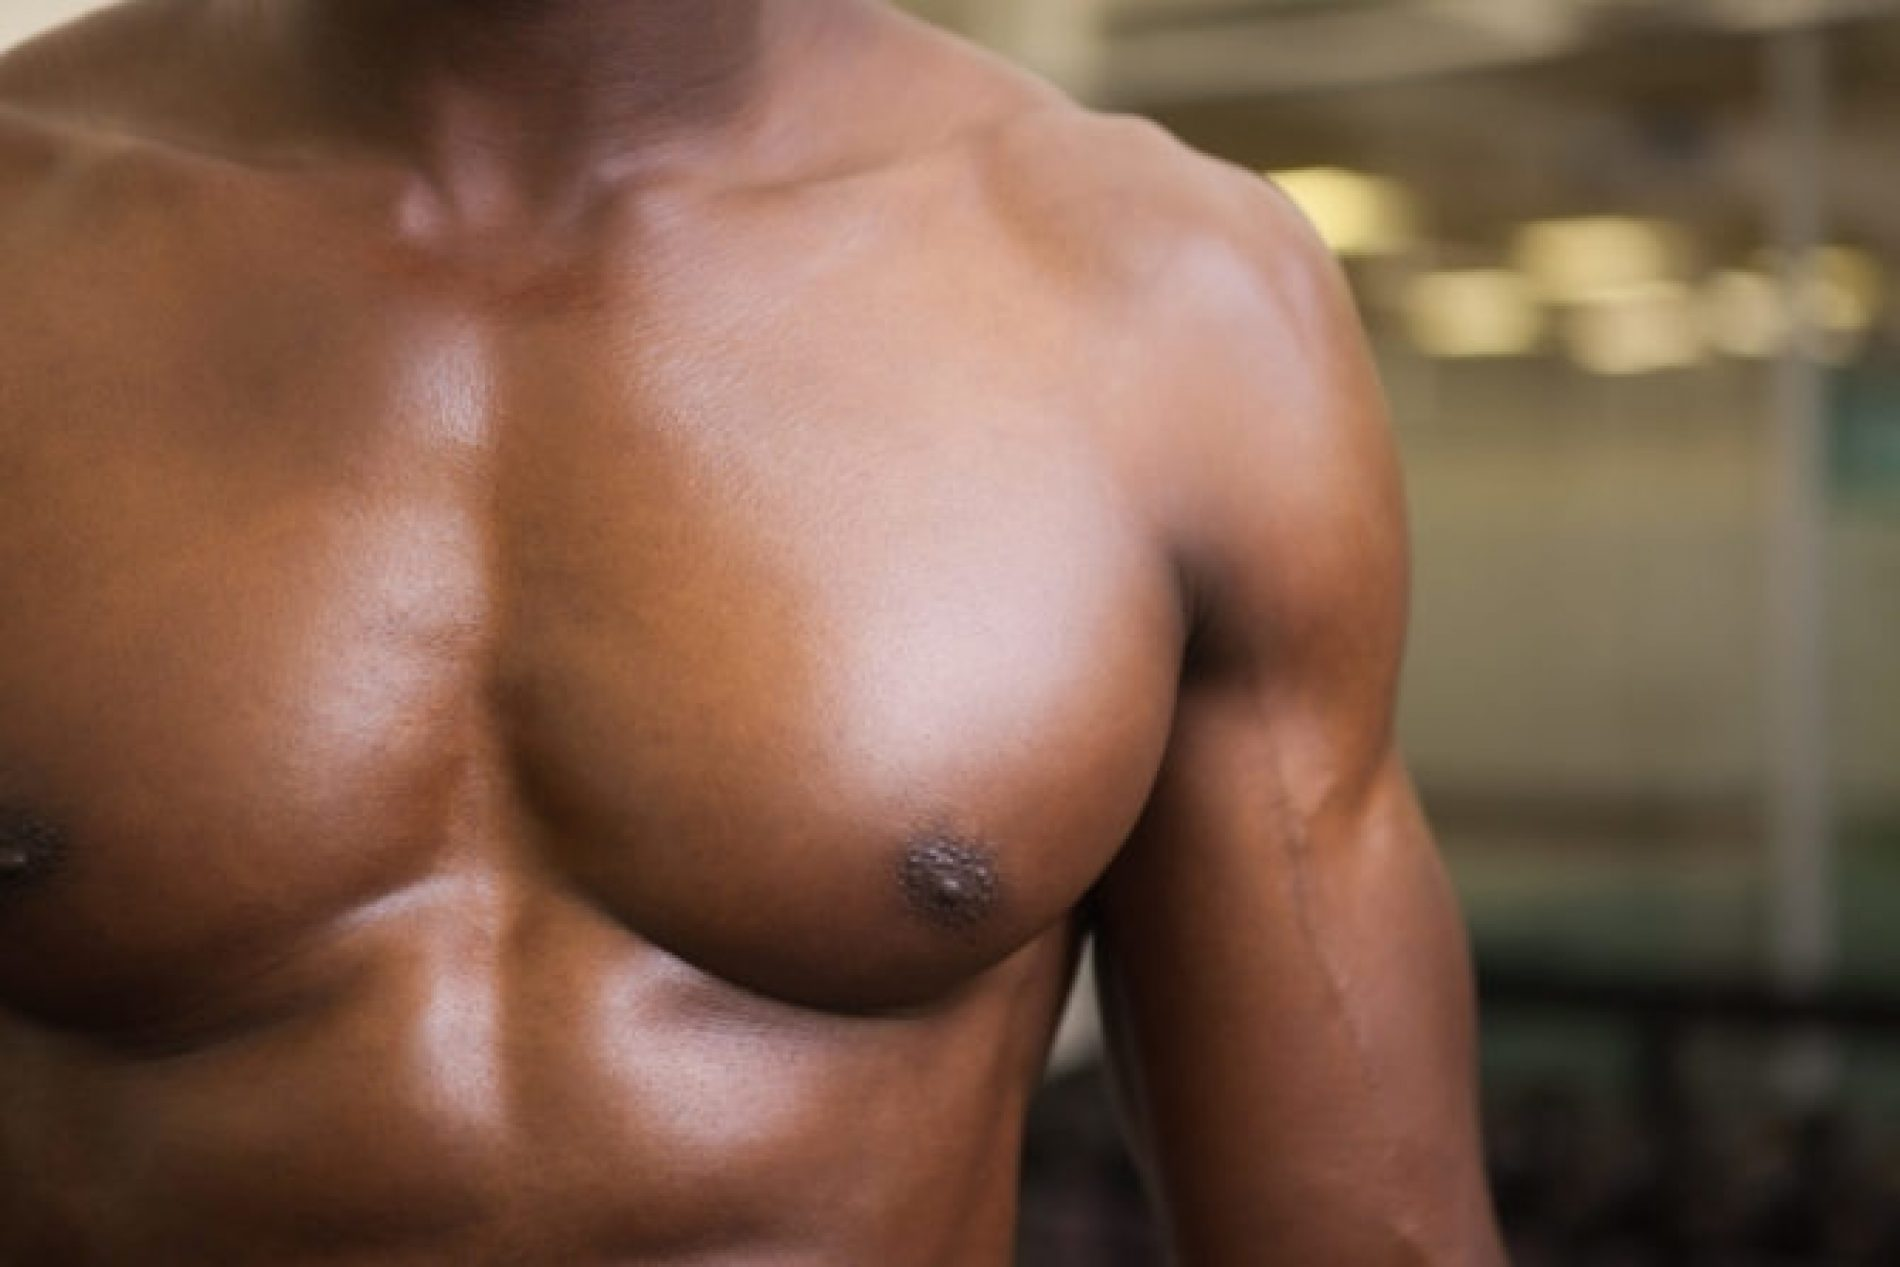 Masculine Black Man has a problem. He is an 'extremely masc bottom'